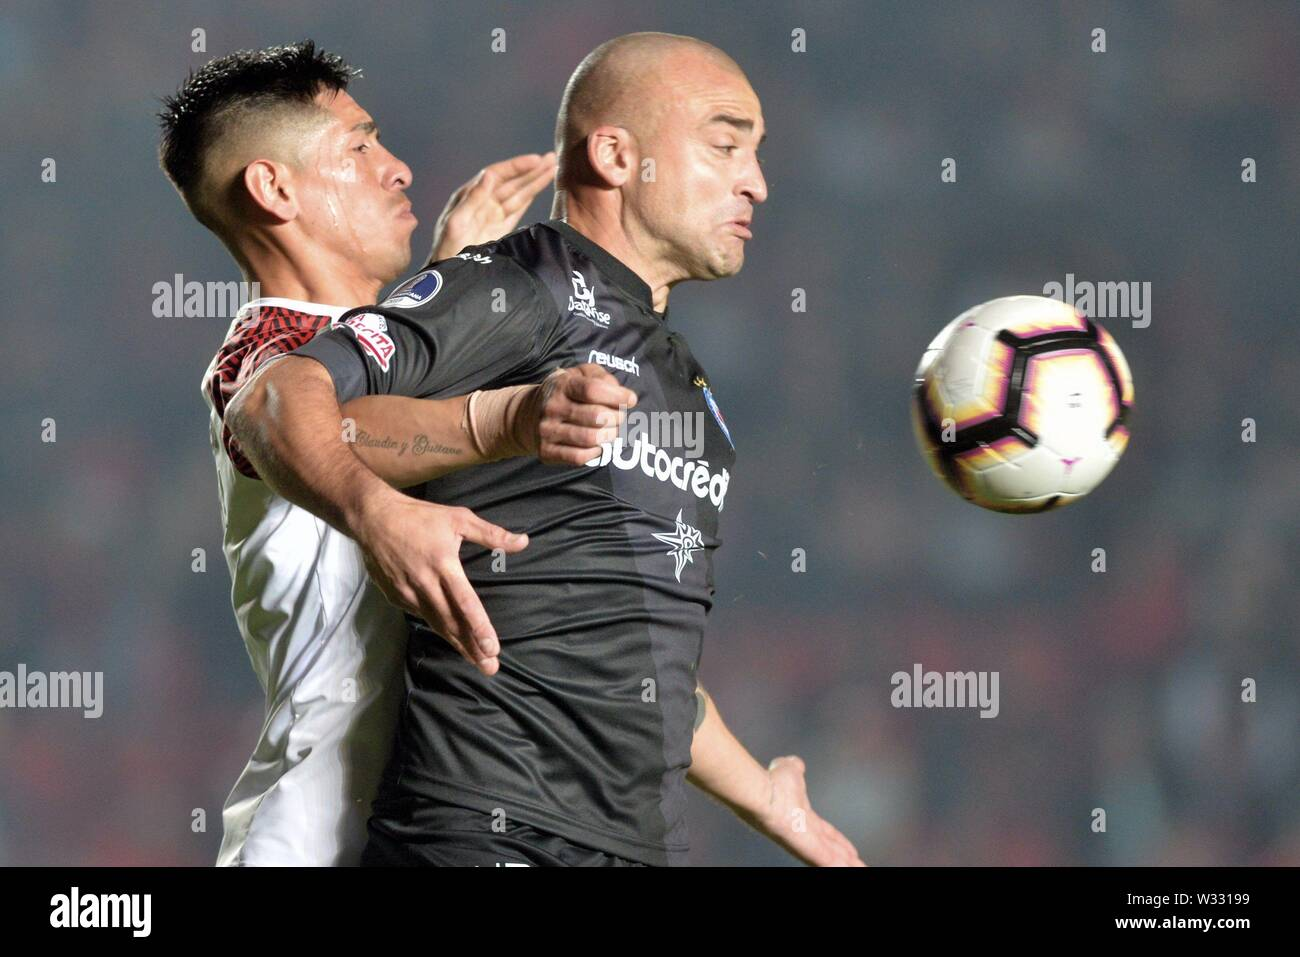 Santa Fe, Argentina. 12th July, 2019. Colon's Emanuel Olivera (L) vies for the ball with Santiago Silva (R) of Argentinos Juniors during the Copa Sudamericana round of 16 first leg match between Club Atletico Colon and Asociacion Atletica Argentinos Juniors at the Brigadier General Estanislao Lopez stadium in Santa Fe, Argentina, 11 July 2019. Credit: JAVIER ESCOBAR/EFE/Alamy Live News - Stock Image